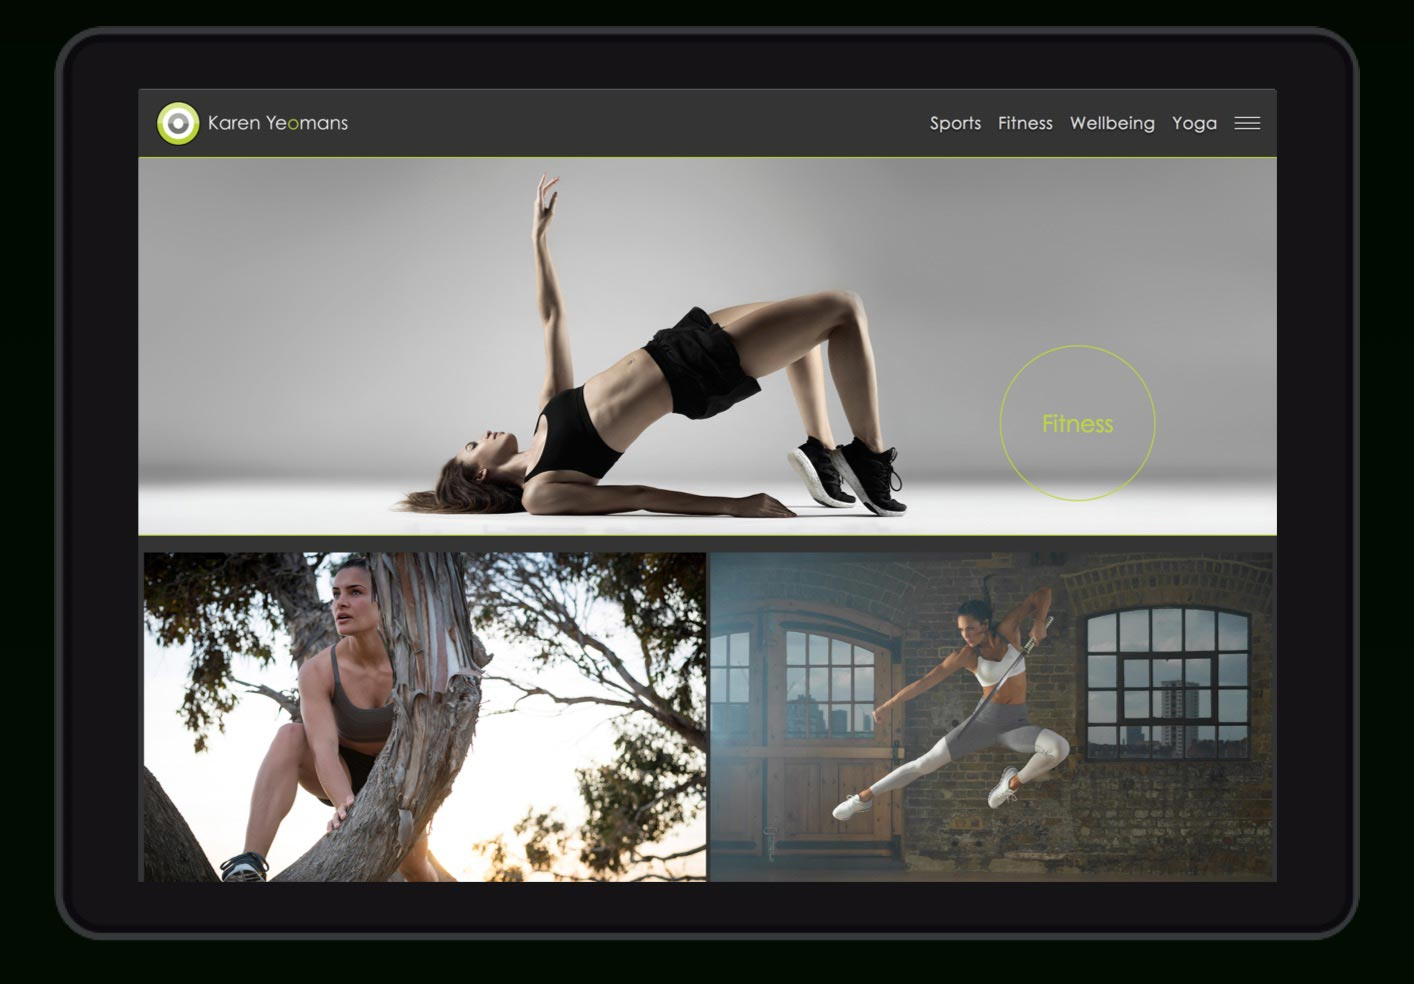 Showcasing Karen Yeomans wellbeing photography on her photography website